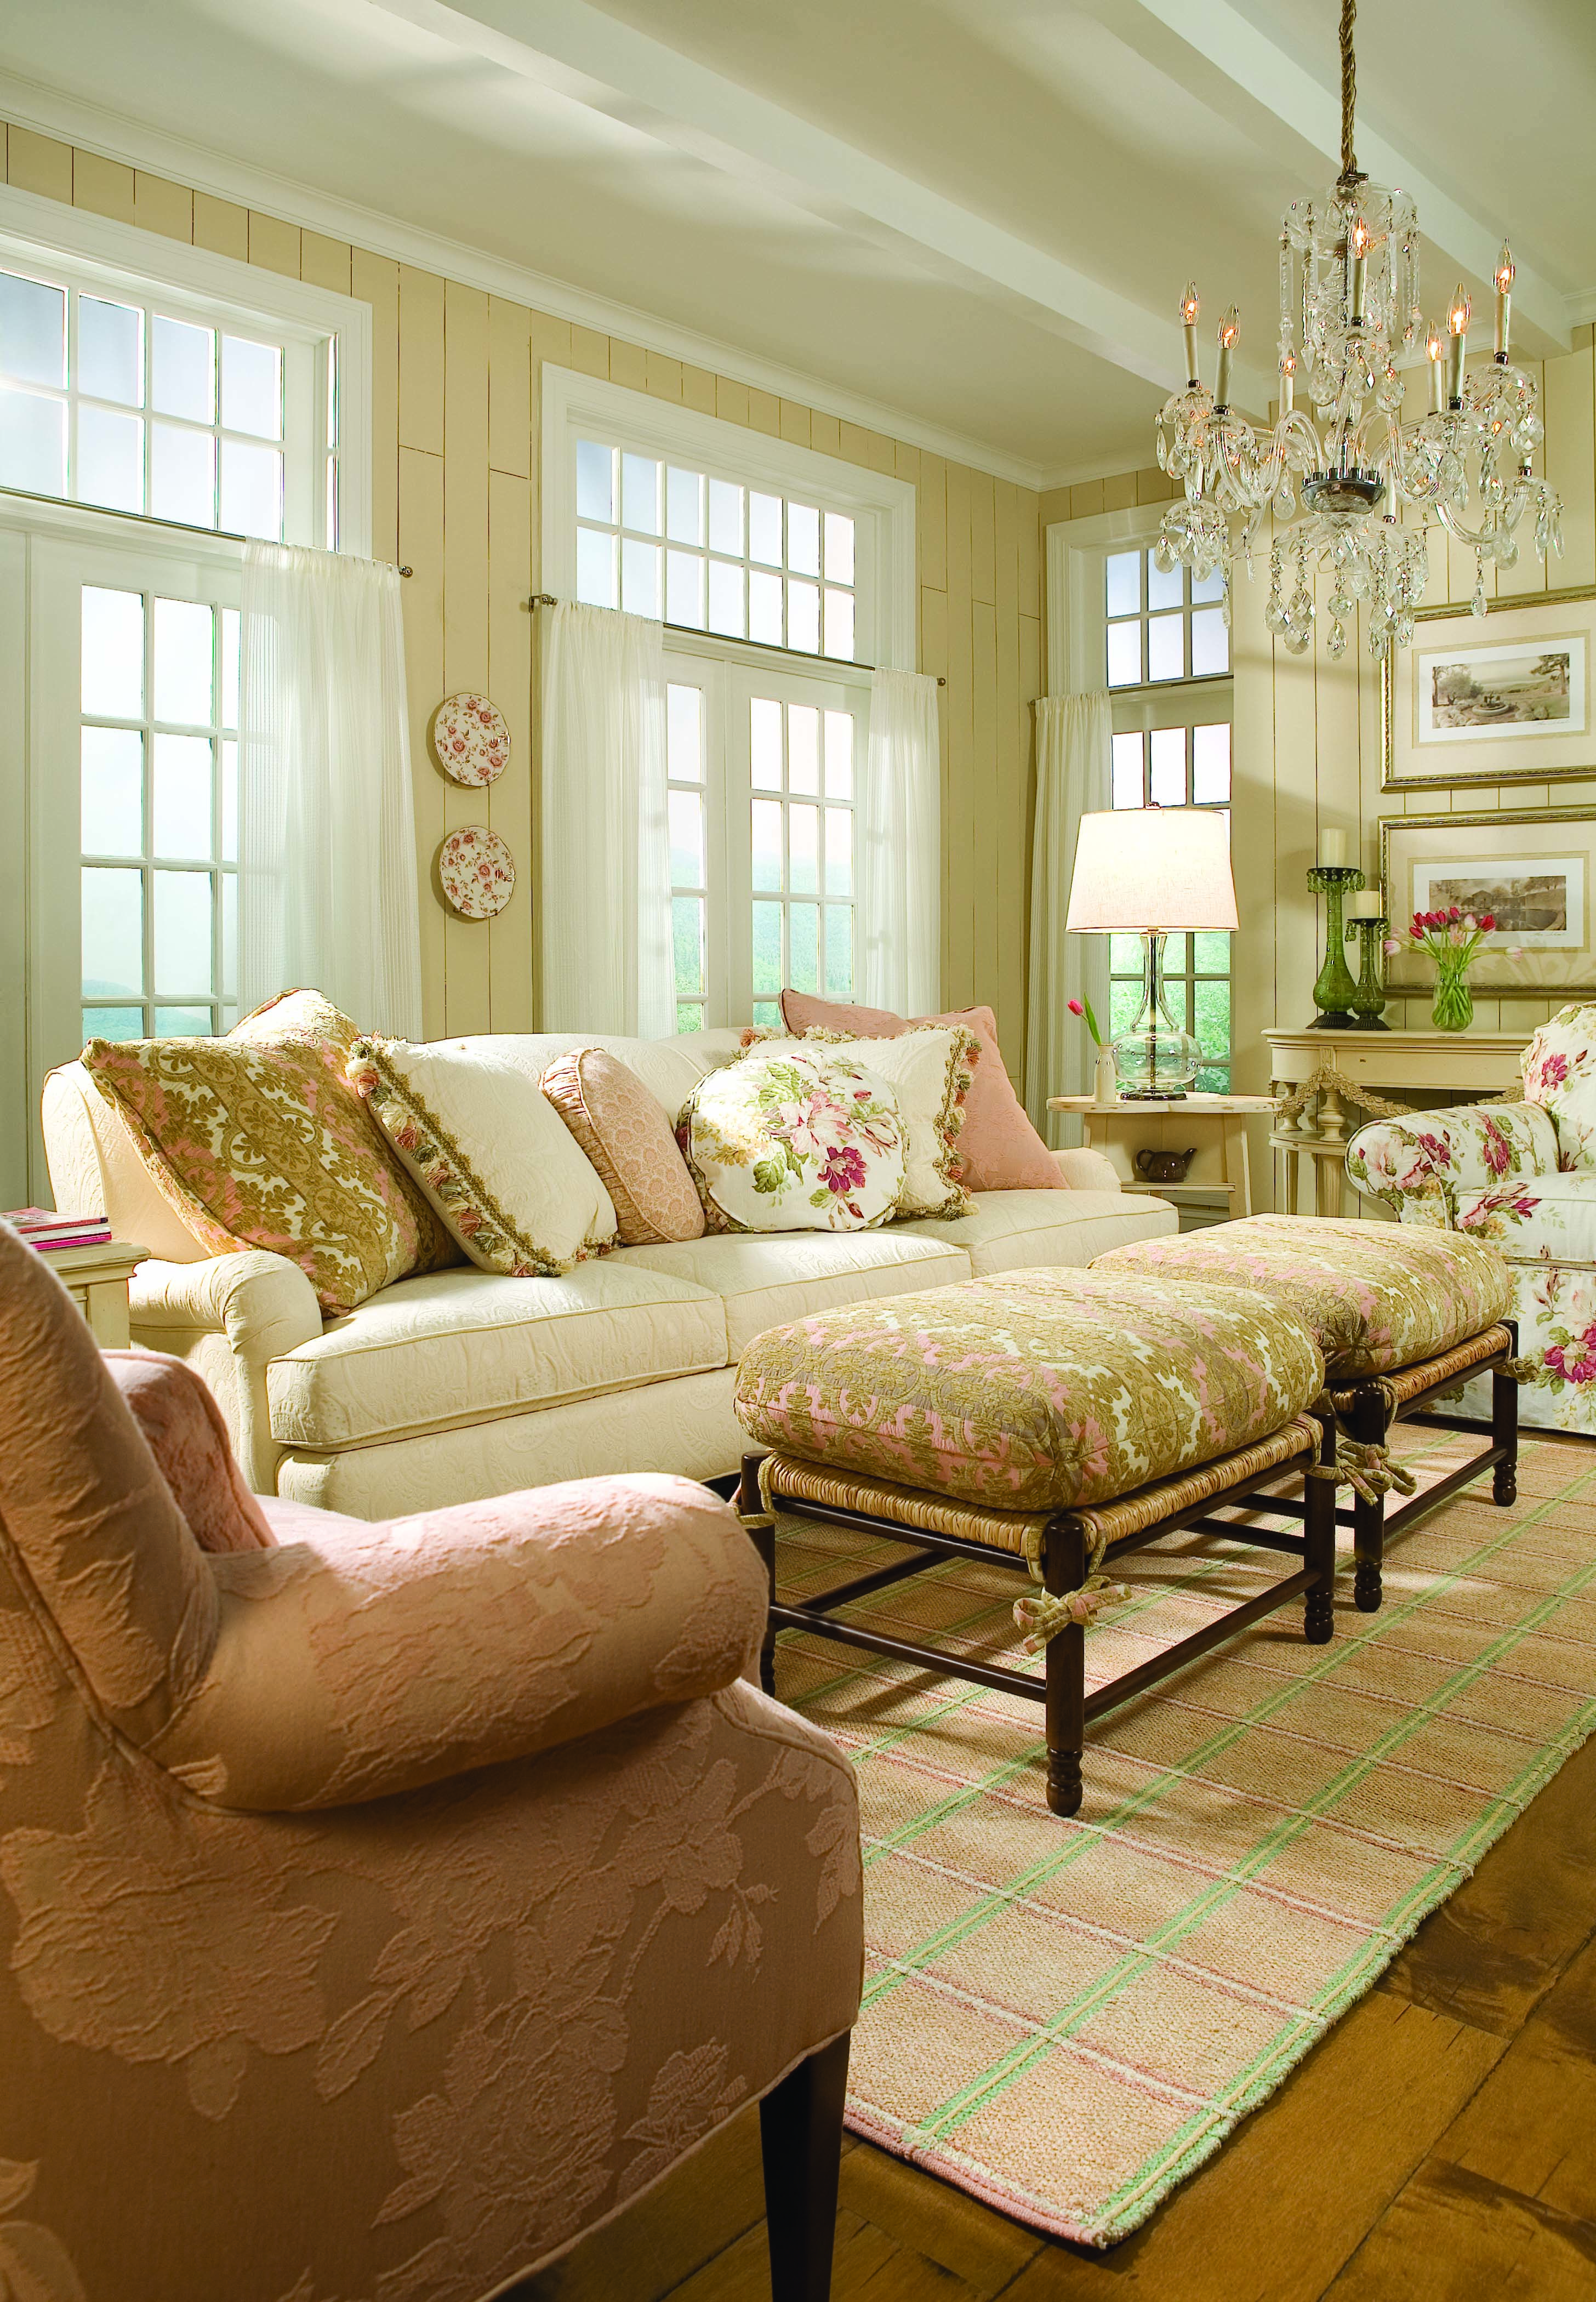 Nautical chic living room - Beach Cottage Nautical Coastal Cozy Design Ideas Pictures Remodel And Decor Living Room In Soft Colors And Cream Panelling